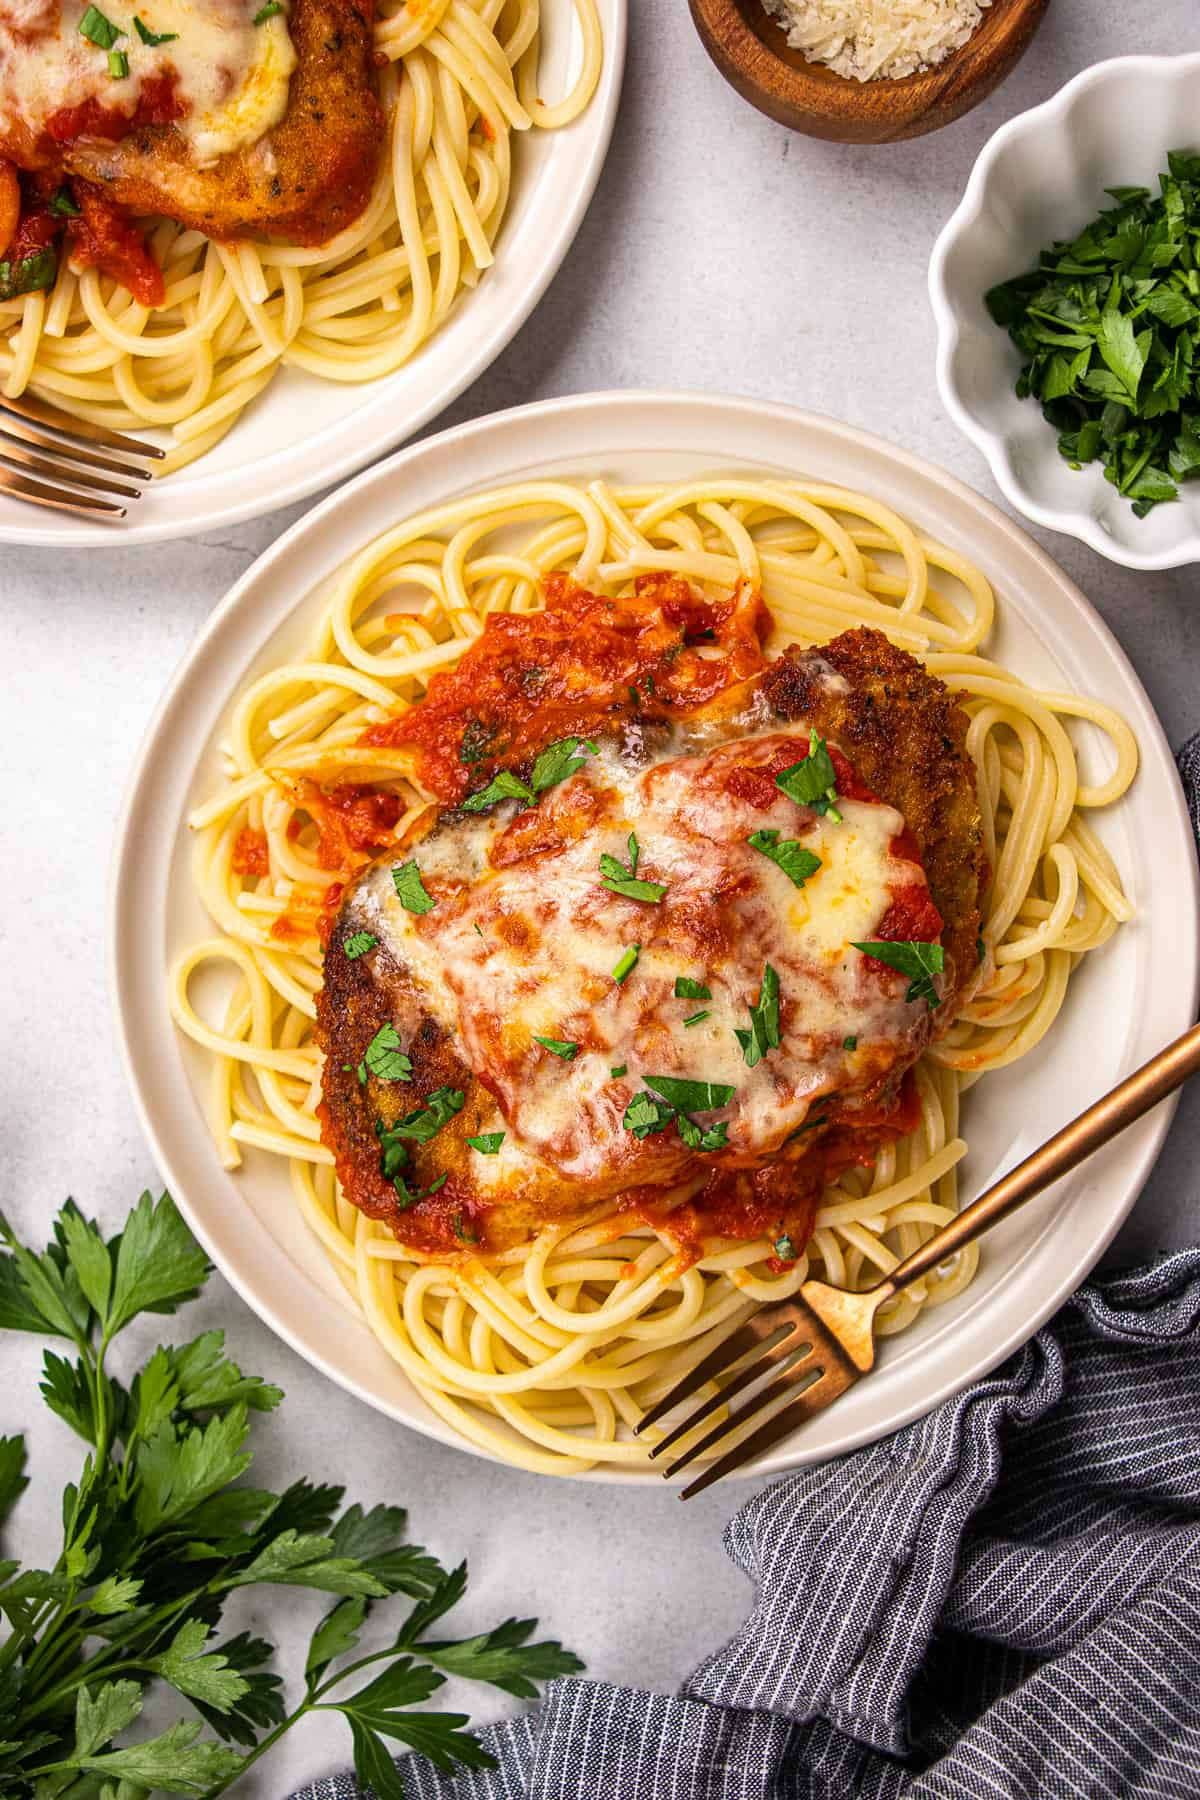 Chicken Parmezan with spaghetti on a white plate.